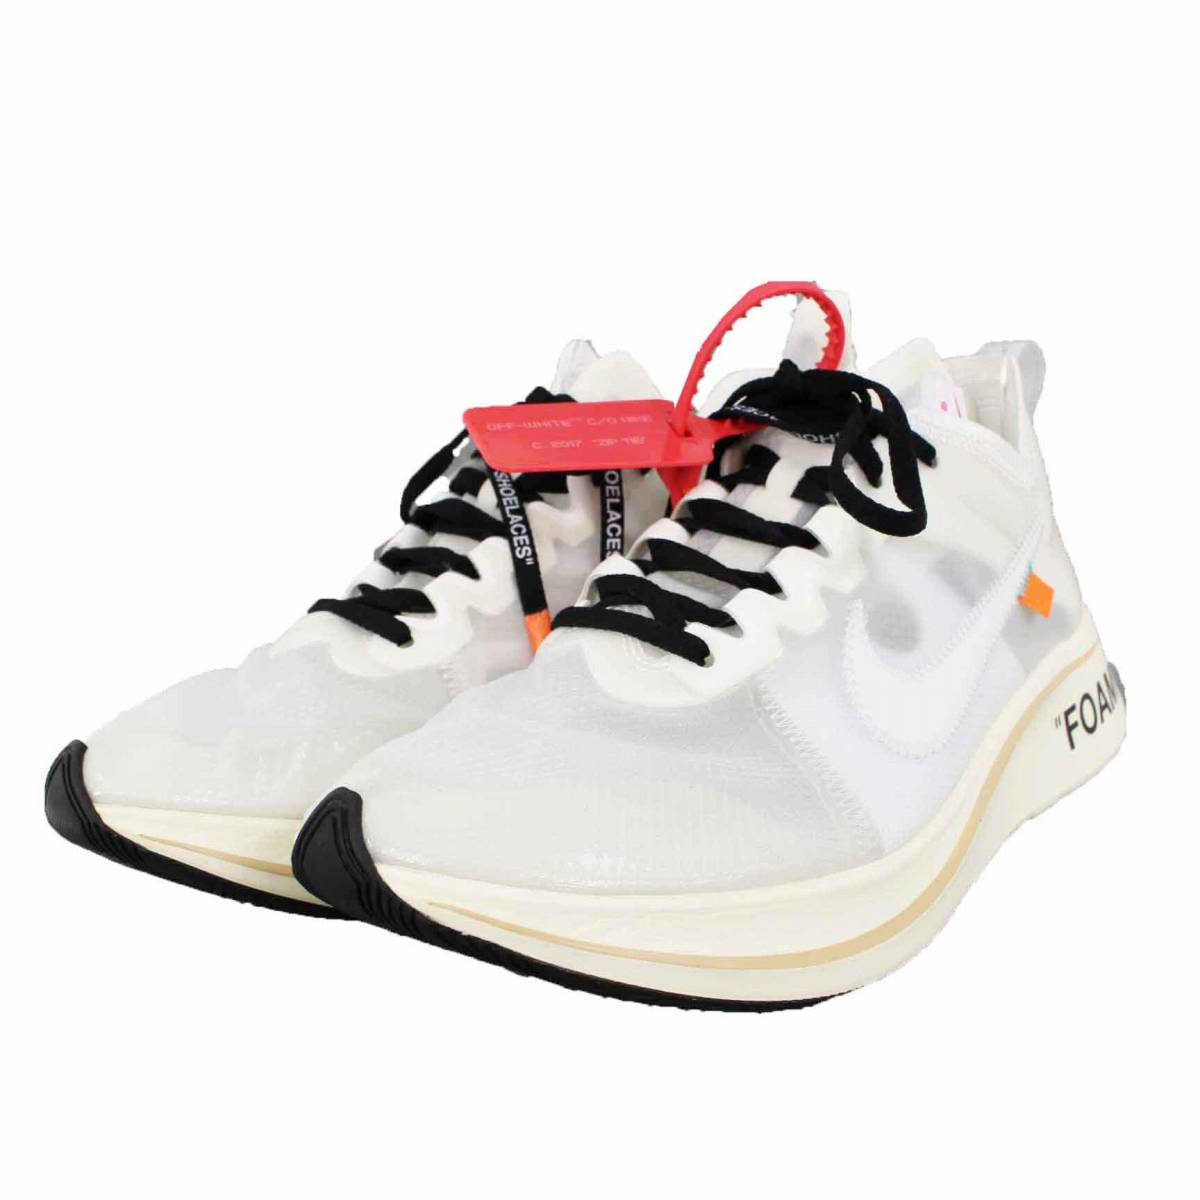 Off Fly 27 Sneakers 5cm White Nike X Rinkan Zoom wEx0BXqP4